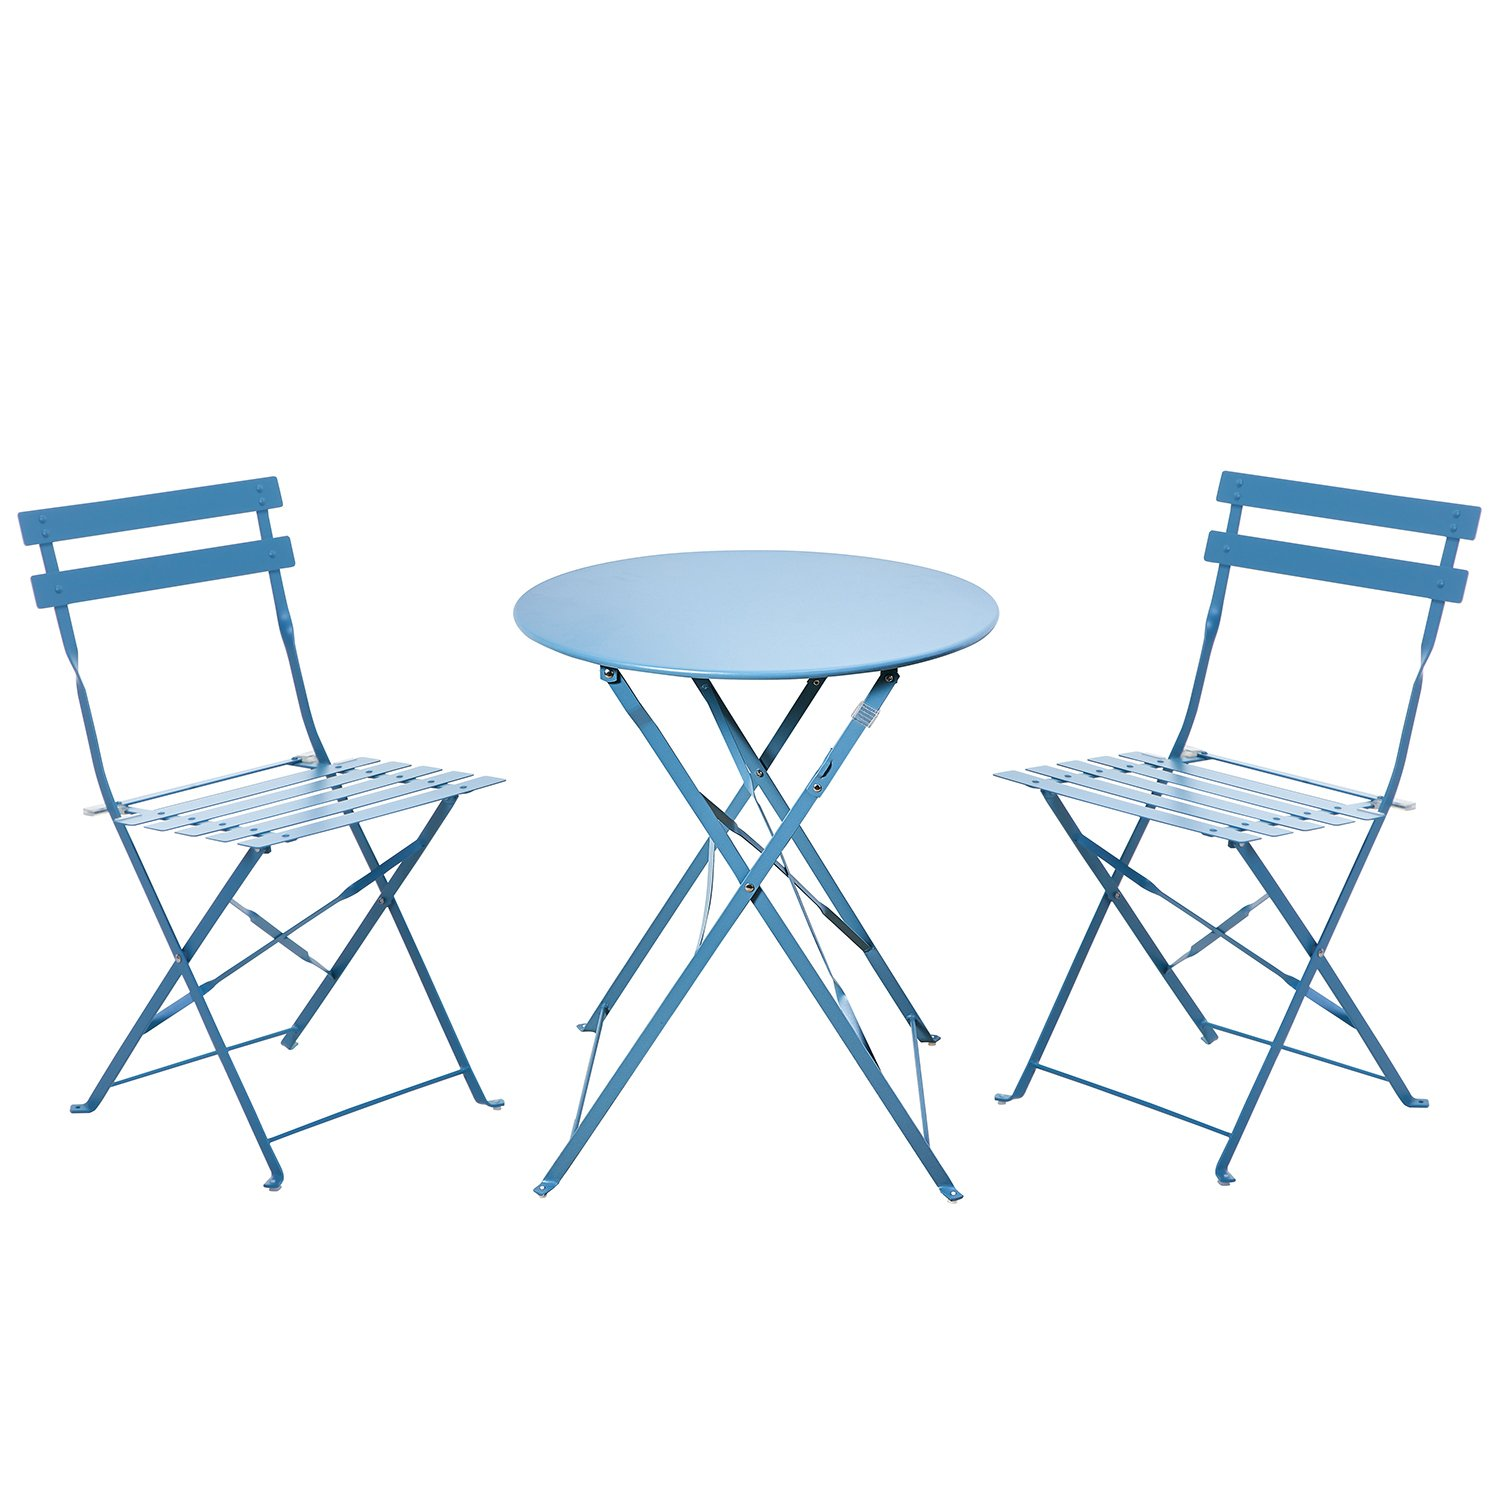 Grand patio 3 Pcs Folding Bistro Set,Patio Outside Dining Table and 2 Chairs Set, Blue